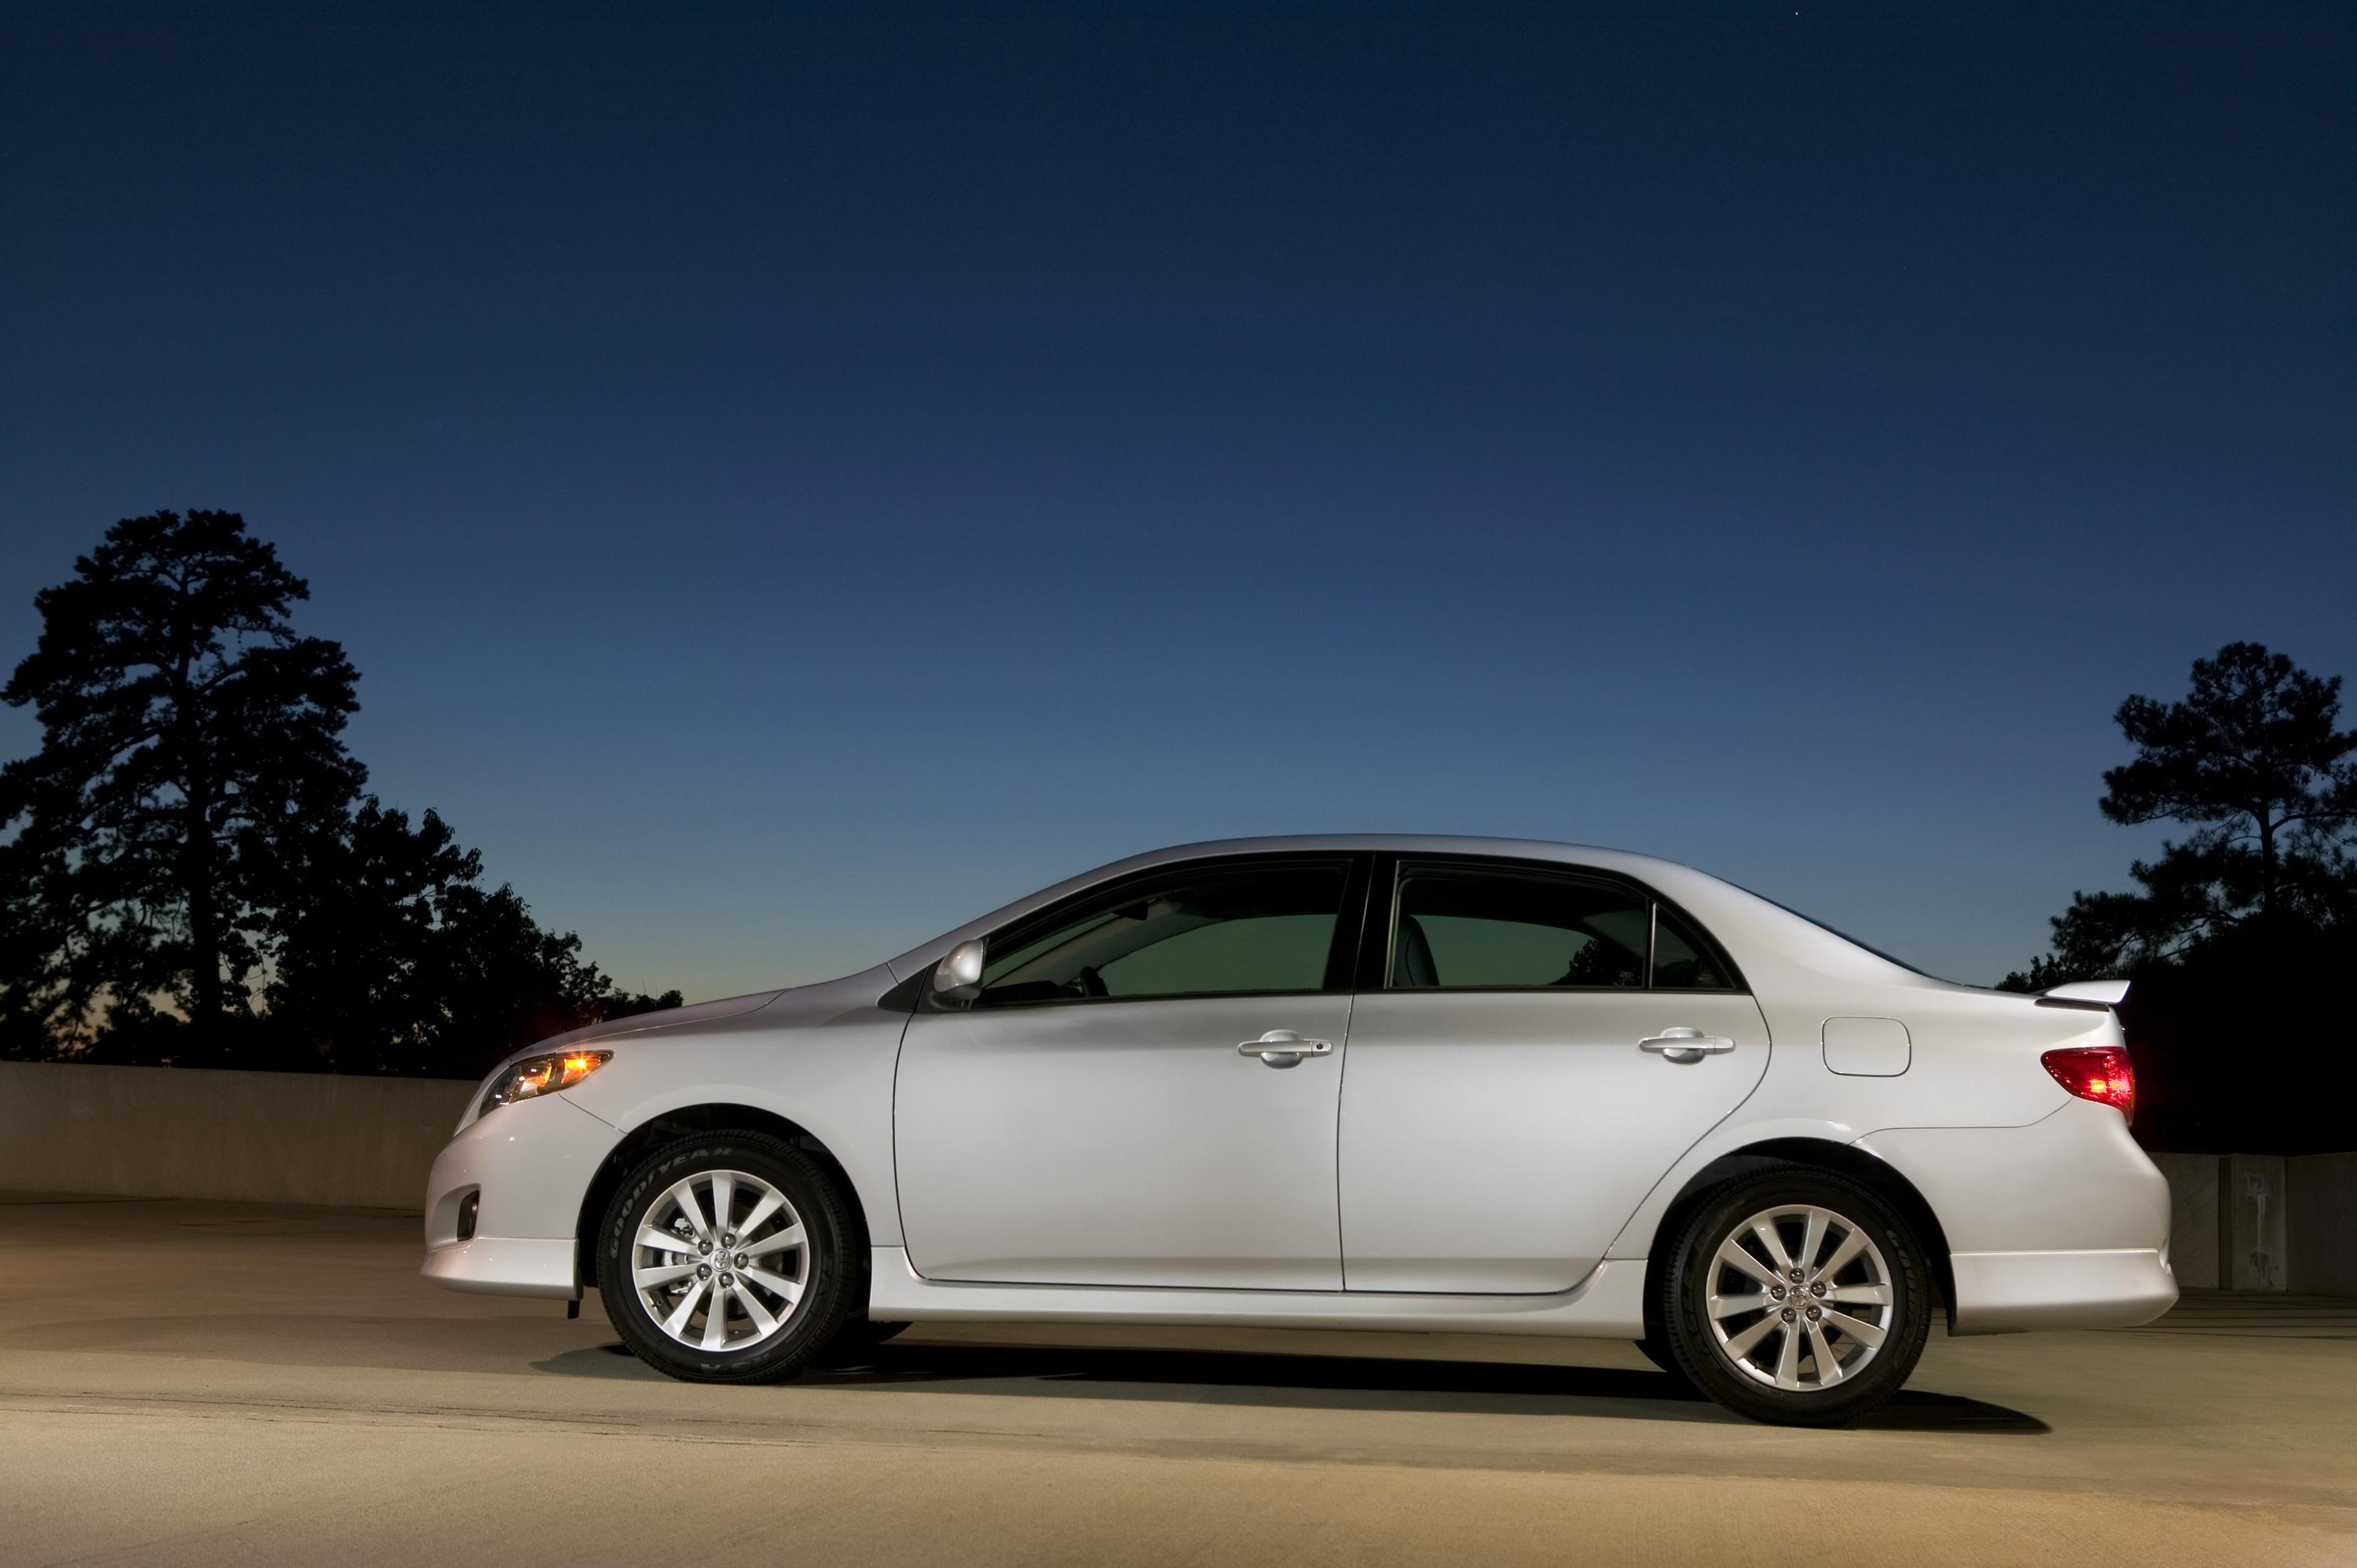 Toyota Corolla Mpg >> Tenth-Generation Toyota Corolla Offers Standout ...